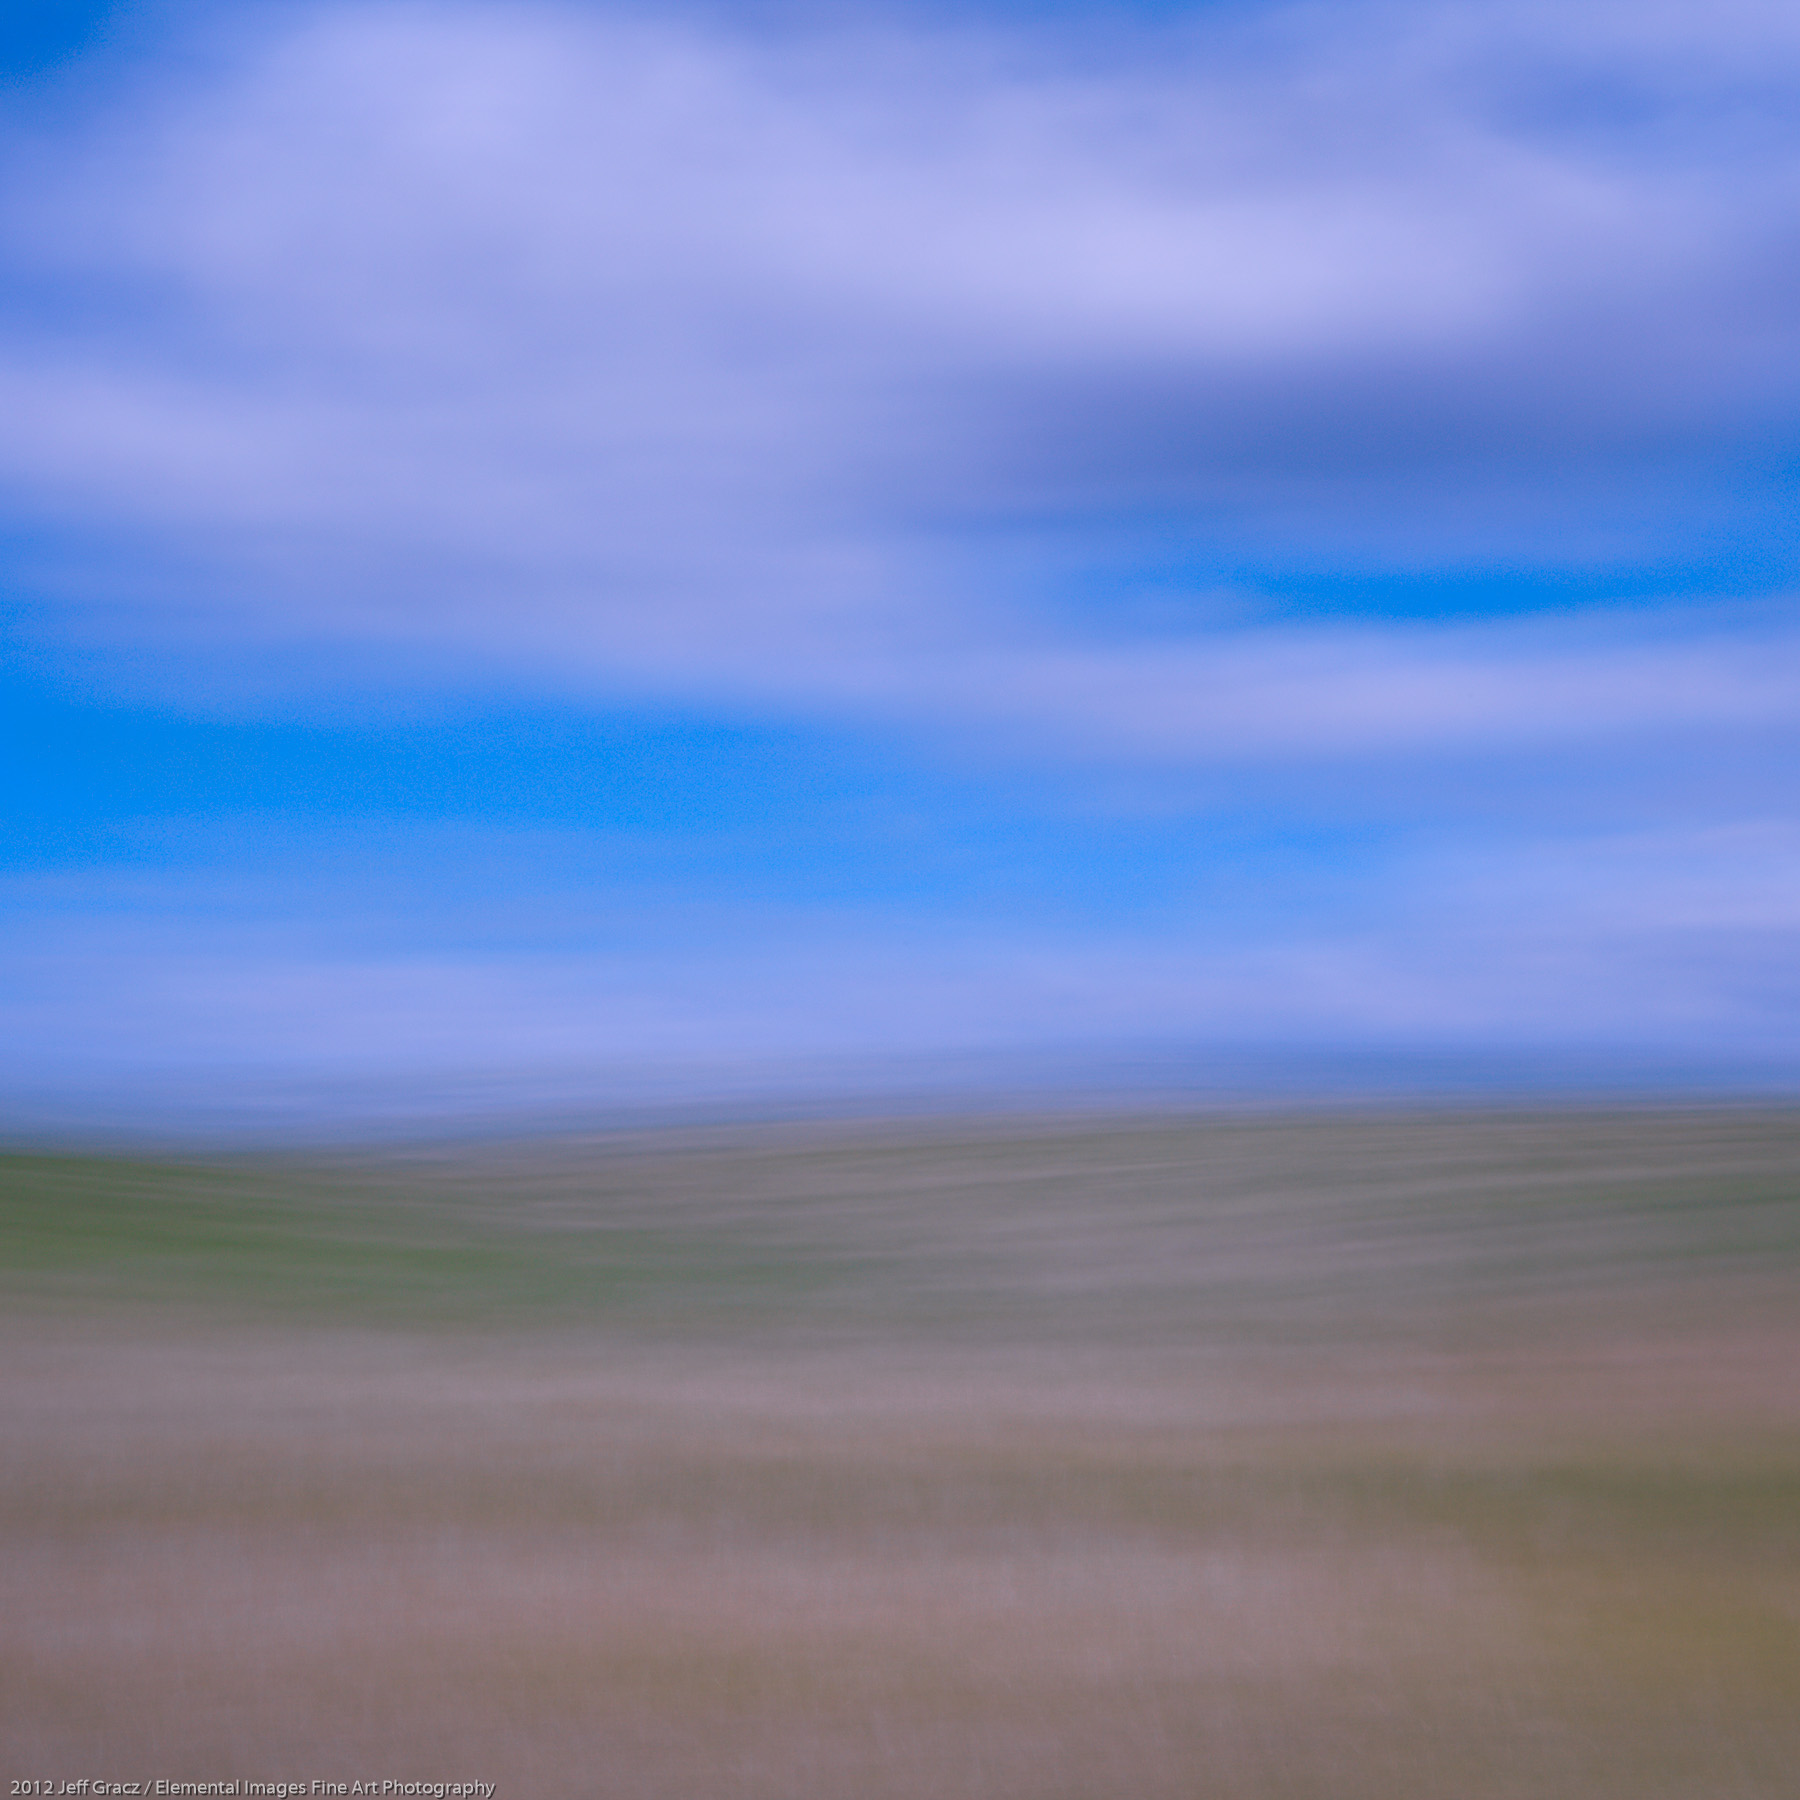 Impressions of The Palouse #12 |  |  | USA - © 2012 Jeff Gracz / Elemental Images Fine Art Photography - All Rights Reserved Worldwide